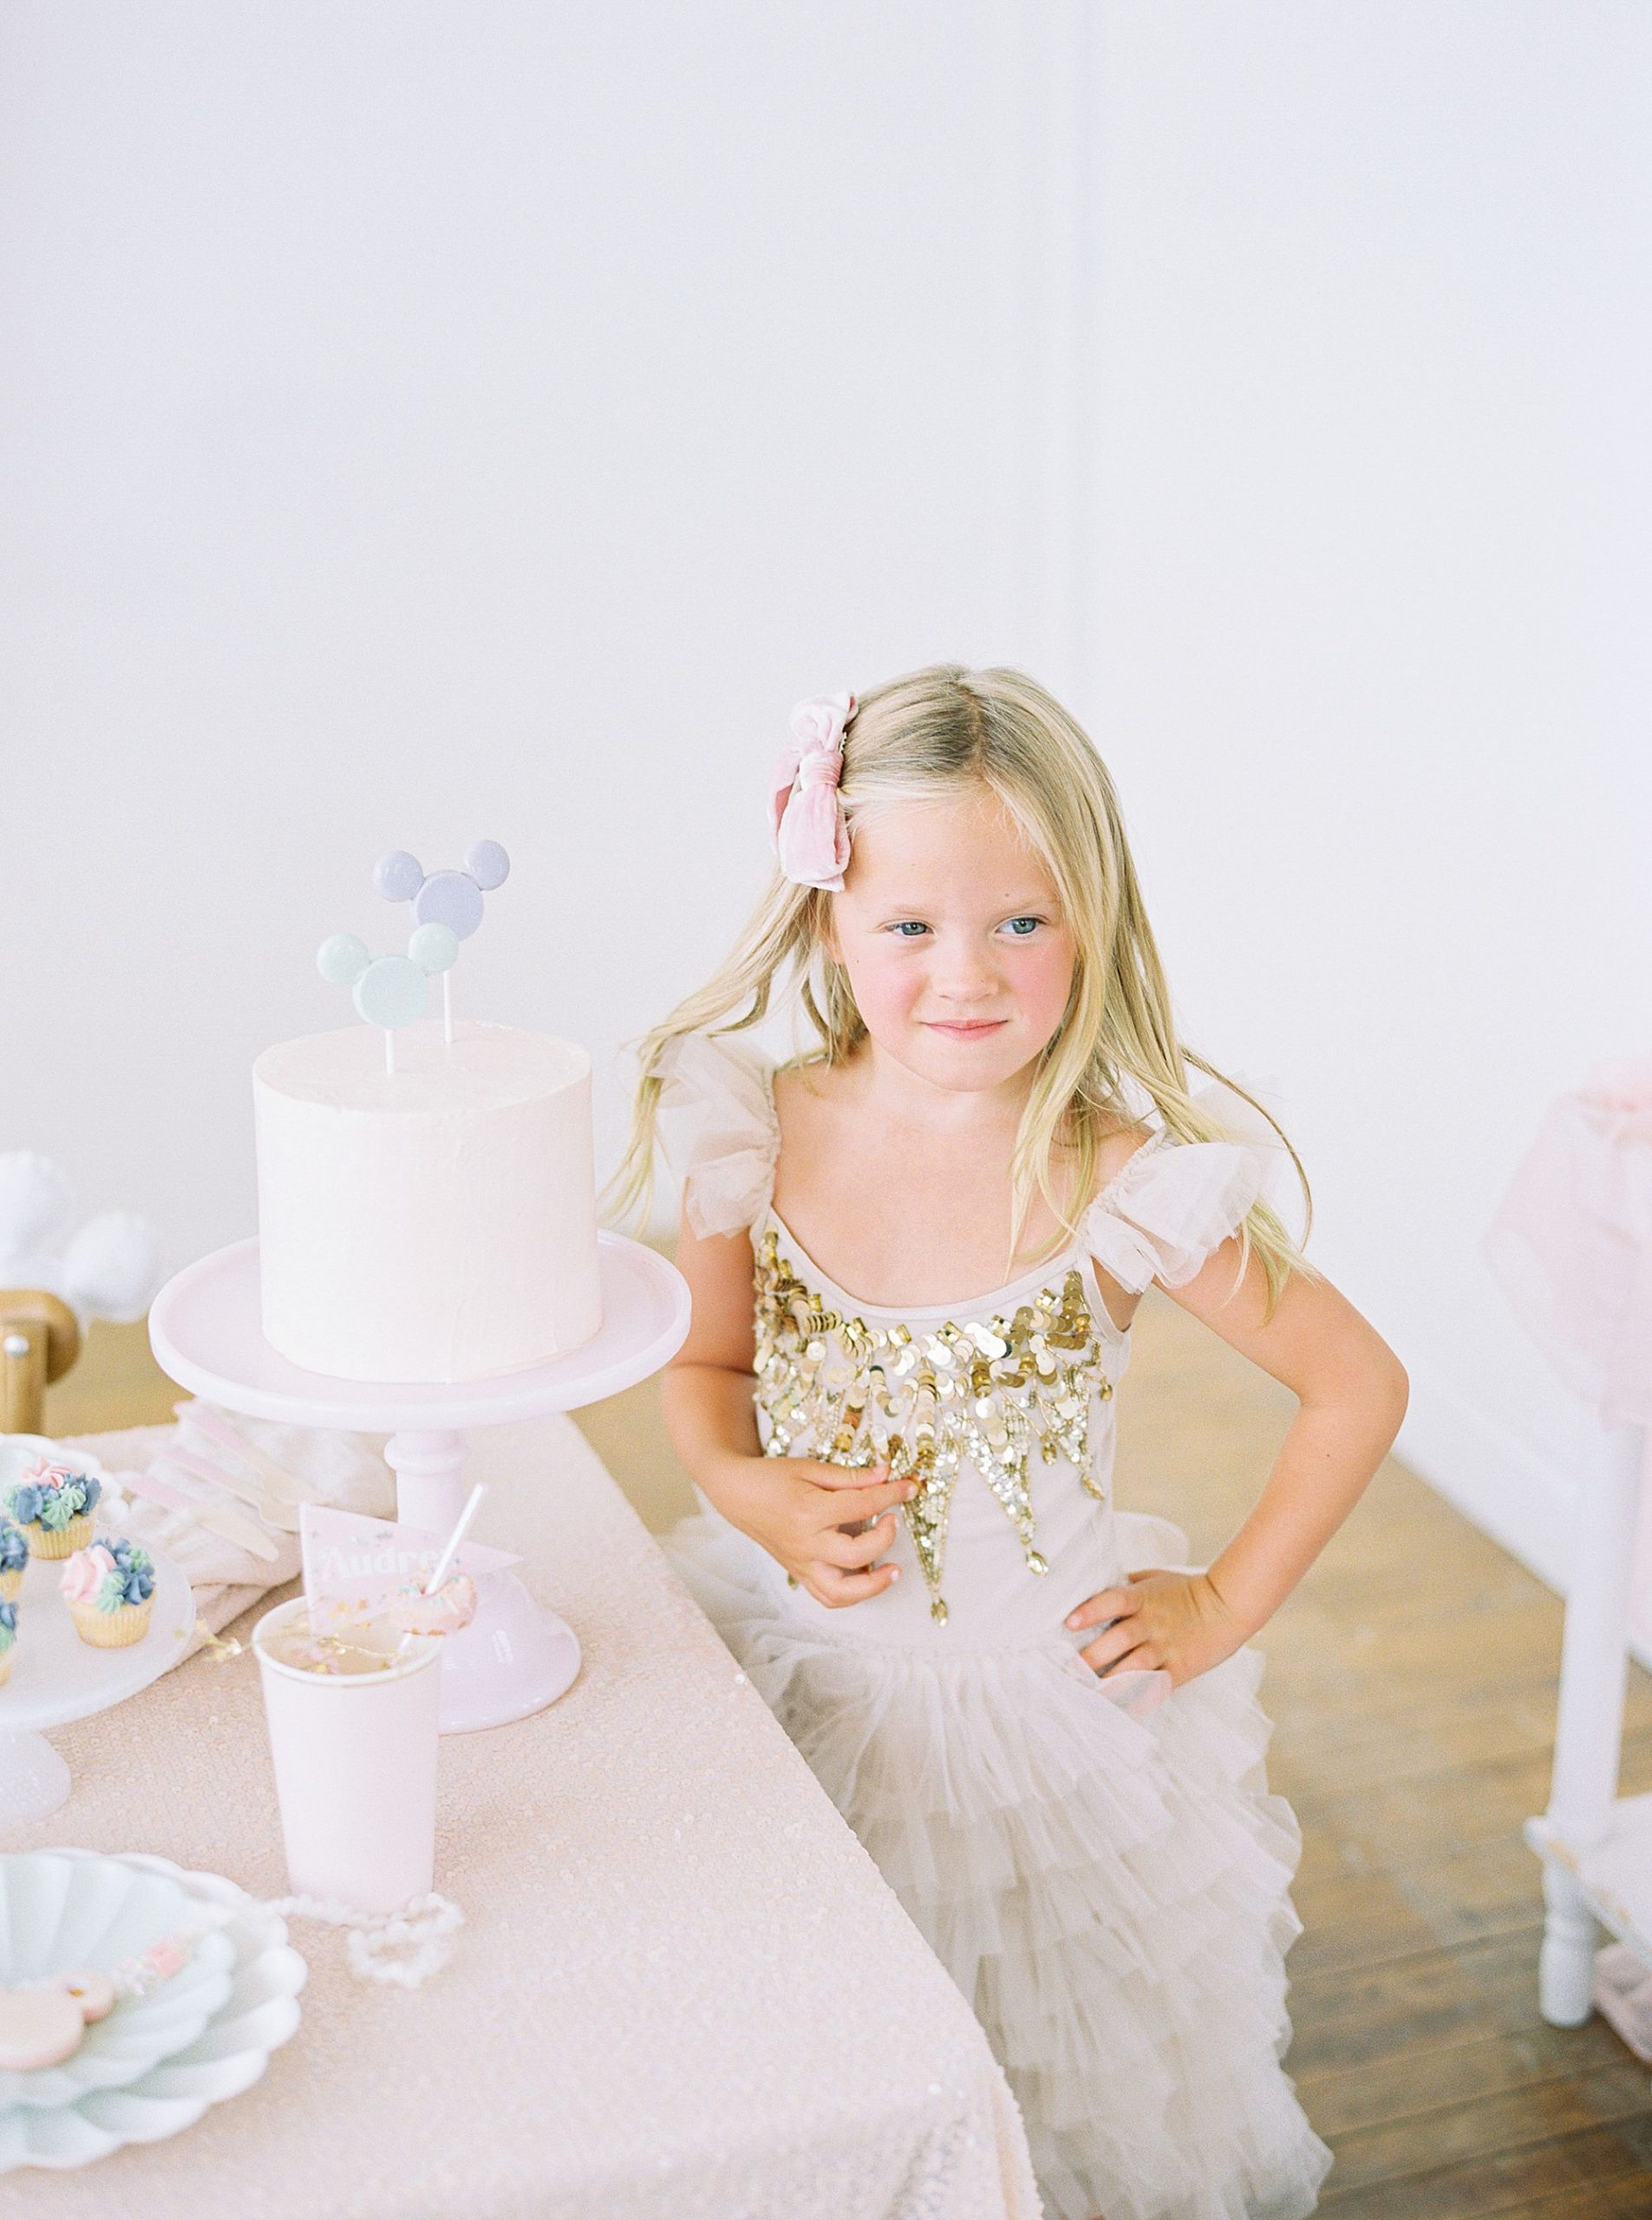 Vintage Disney Birthday Party for Princess Nora's Fourth Birthday - Featured on 100 Layer Cake - Ashley Baumgartner - Parker Grace Events_0011.jpg